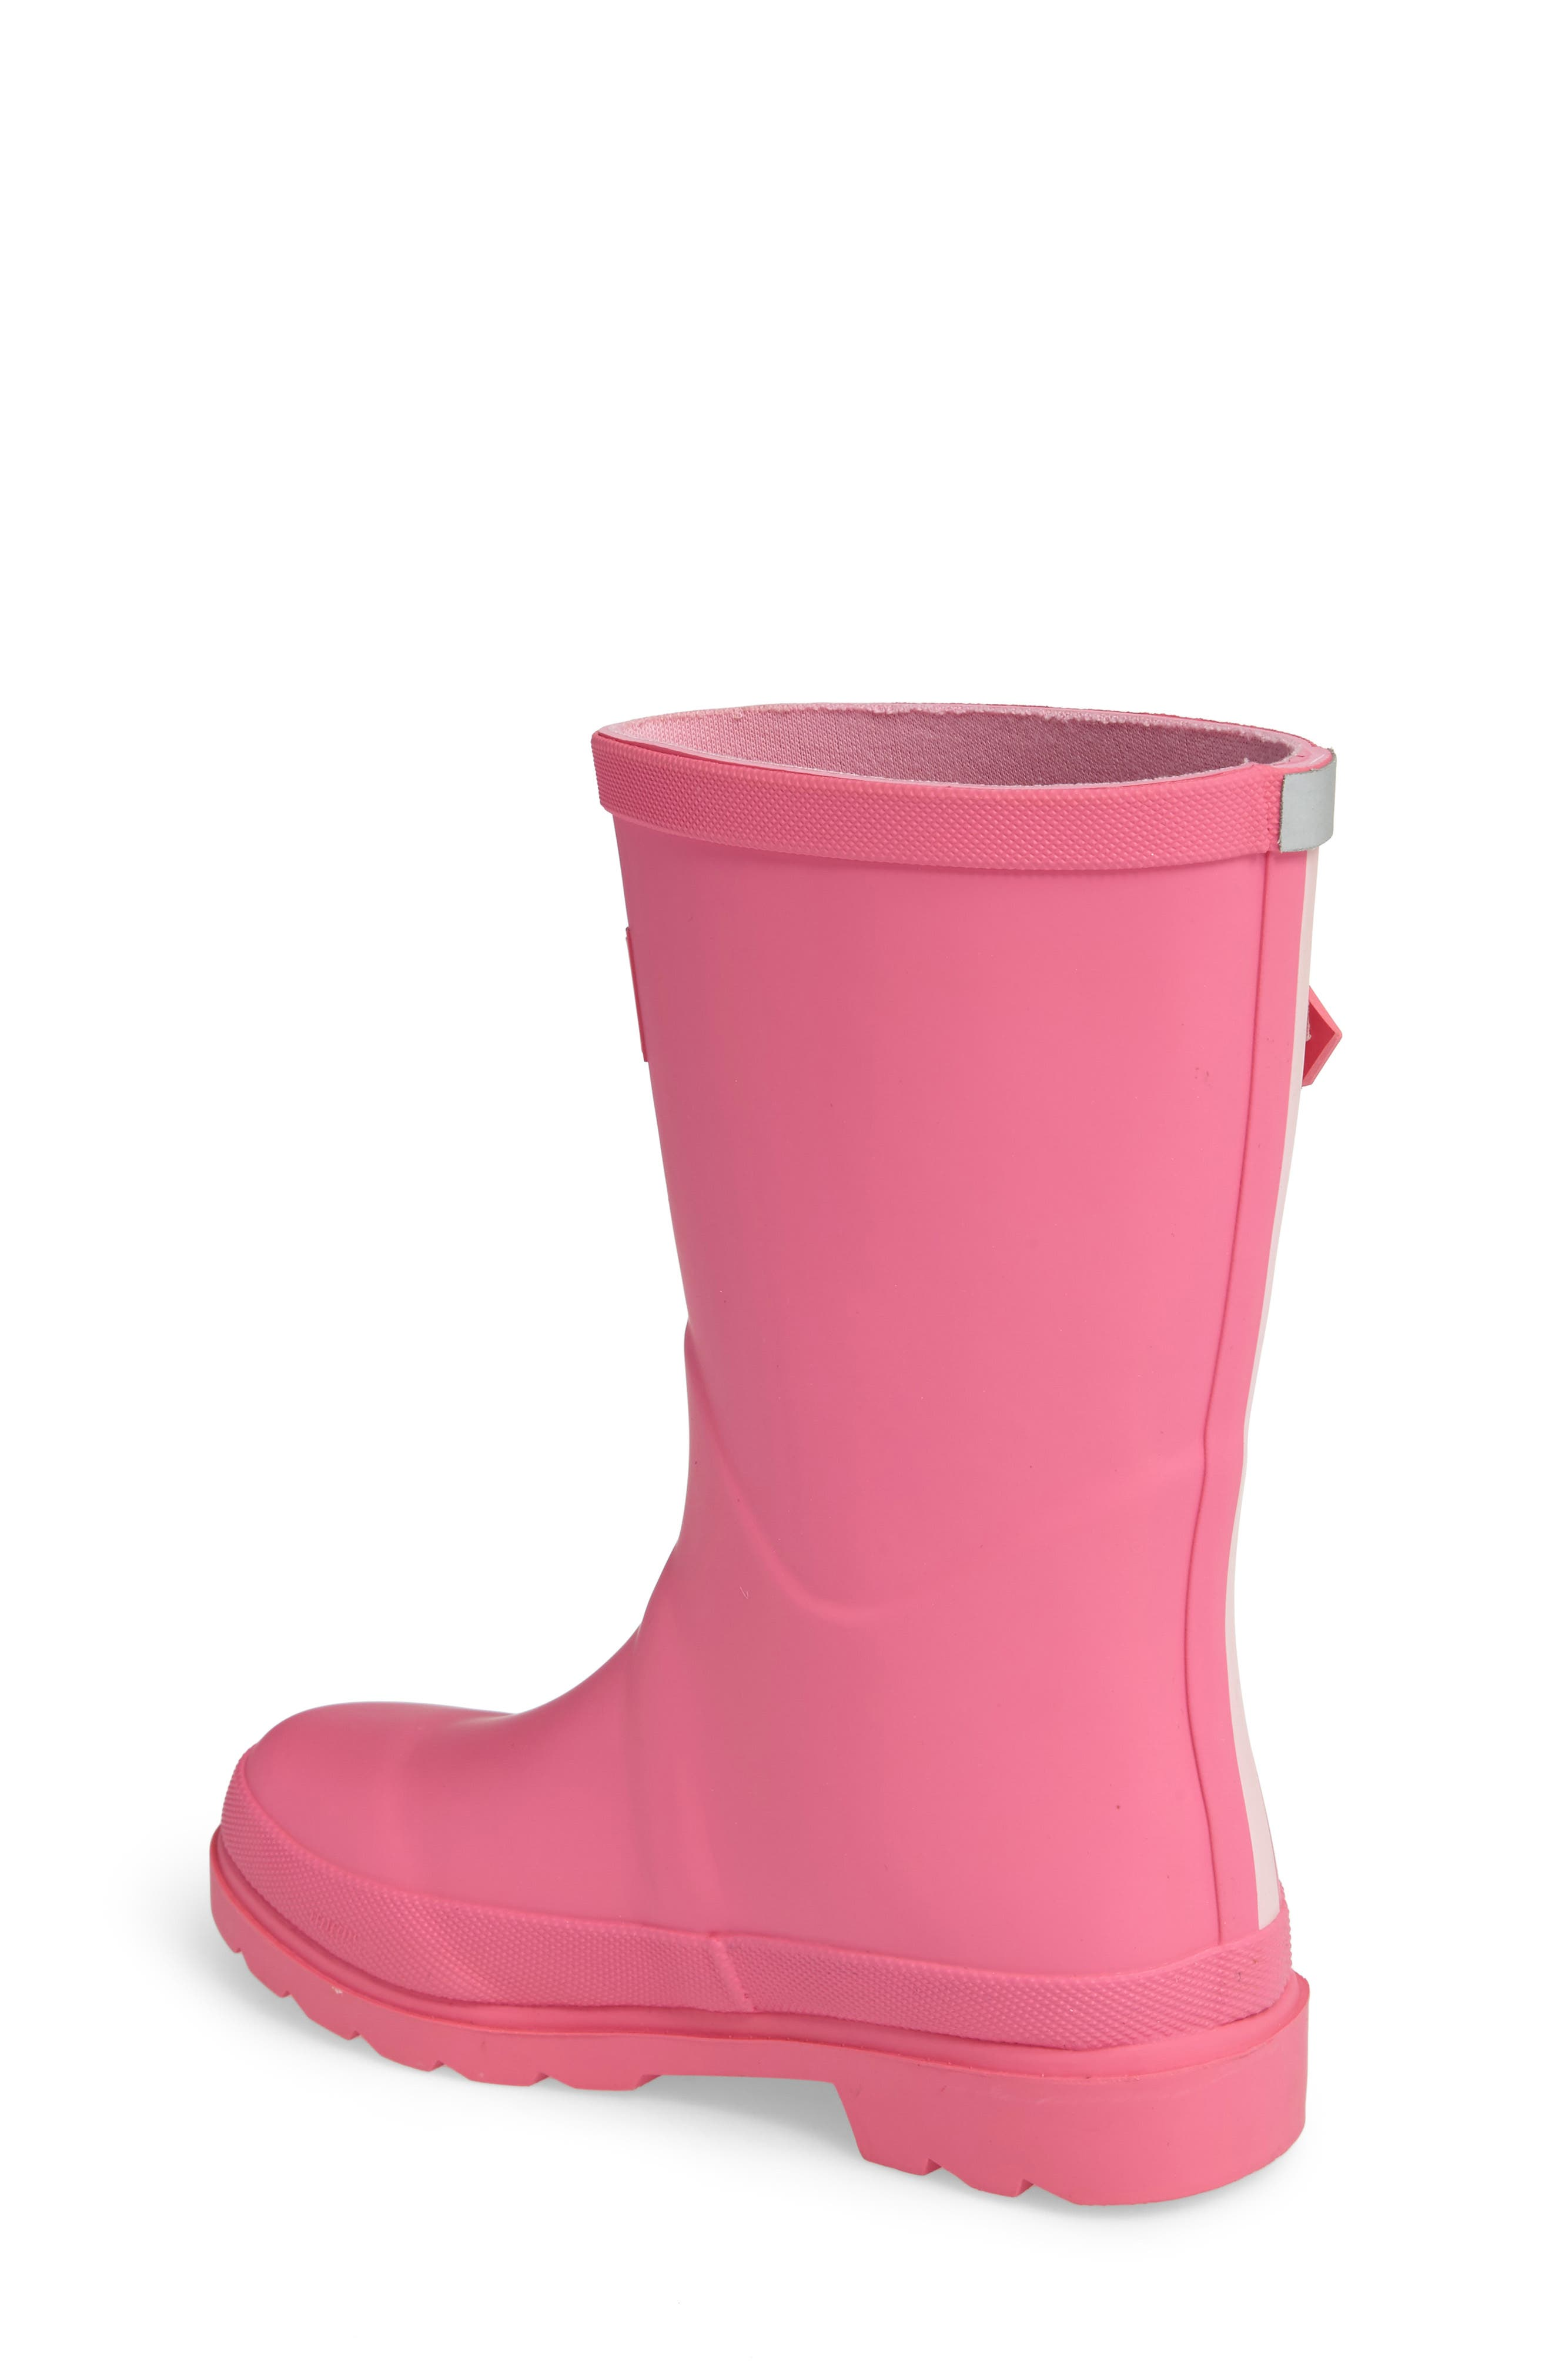 Welly Matte Waterproof Rain Boot,                             Alternate thumbnail 2, color,                             665